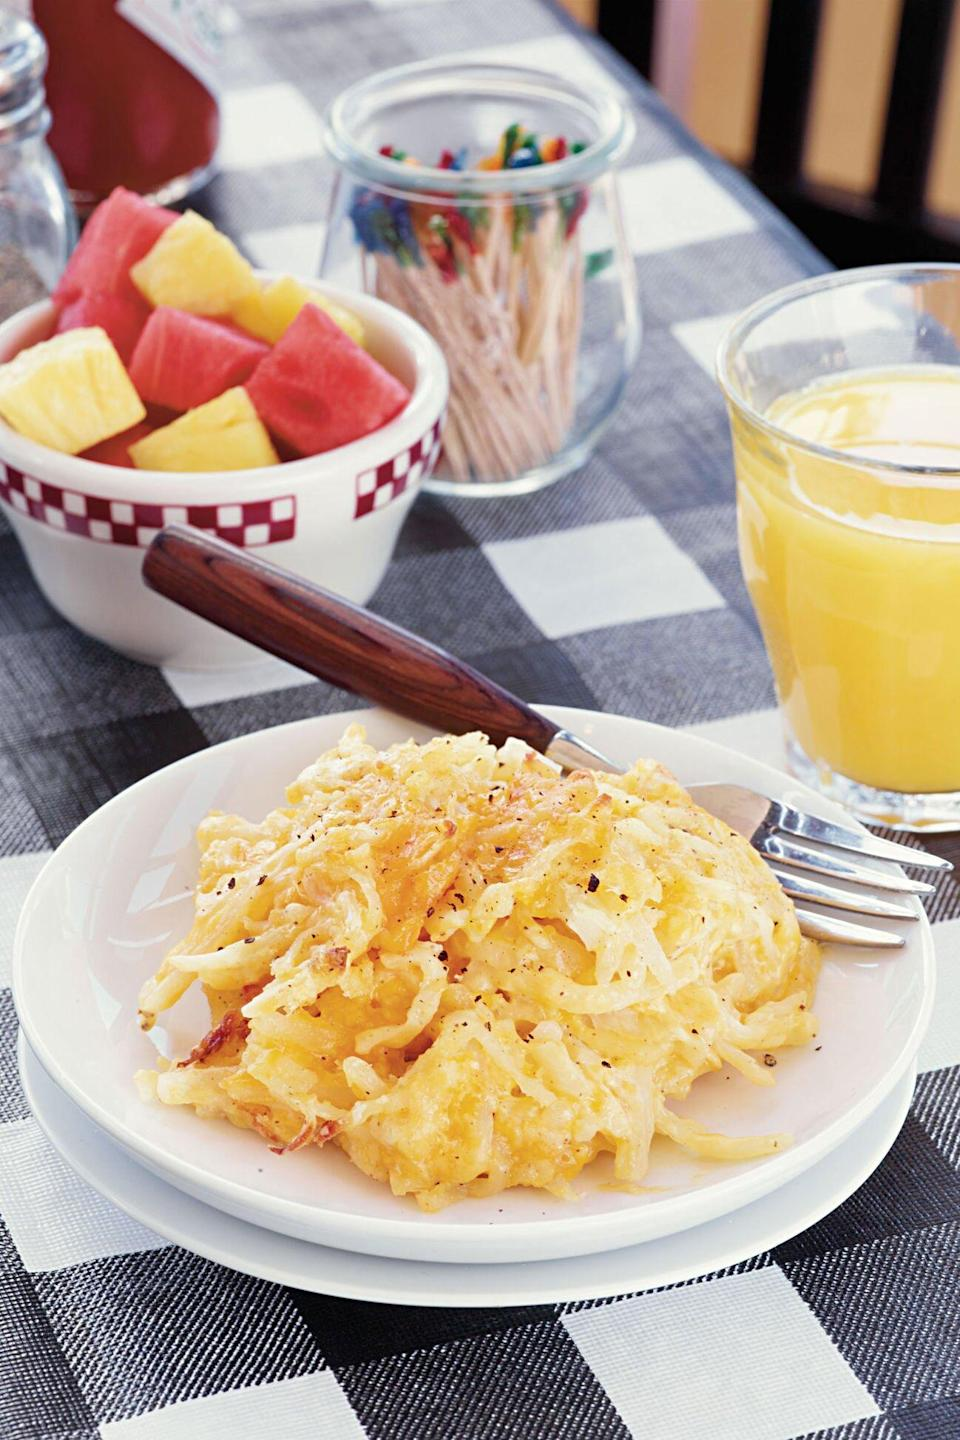 """<p><strong>Recipe:</strong> <a href=""""https://www.southernliving.com/recipes/hashbrown-casserole-recipe"""" rel=""""nofollow noopener"""" target=""""_blank"""" data-ylk=""""slk:Hash Brown Casserole"""" class=""""link rapid-noclick-resp""""><strong>Hash Brown Casserole</strong></a></p> <p>This heavenly casserole from Loveless Cafe and Motel challenges the mindset that hash browns only belong on a breakfast plate. Pre-shredded potatoes streamline this favorite dish. And while grammarians may argue whether it is """"hash brown casserole"""" or """"hashbrown casserole,"""" we'll just have a second helping.</p> <p><strong>Tour Loveless Cafe:</strong> <a href=""""http://www.southernliving.com/travel/south-central/loveless-cafe-nashville-tennessee-00417000082648/"""" rel=""""nofollow noopener"""" target=""""_blank"""" data-ylk=""""slk:Memorable Music City Dive"""" class=""""link rapid-noclick-resp""""><strong>Memorable Music City Dive</strong></a></p>"""